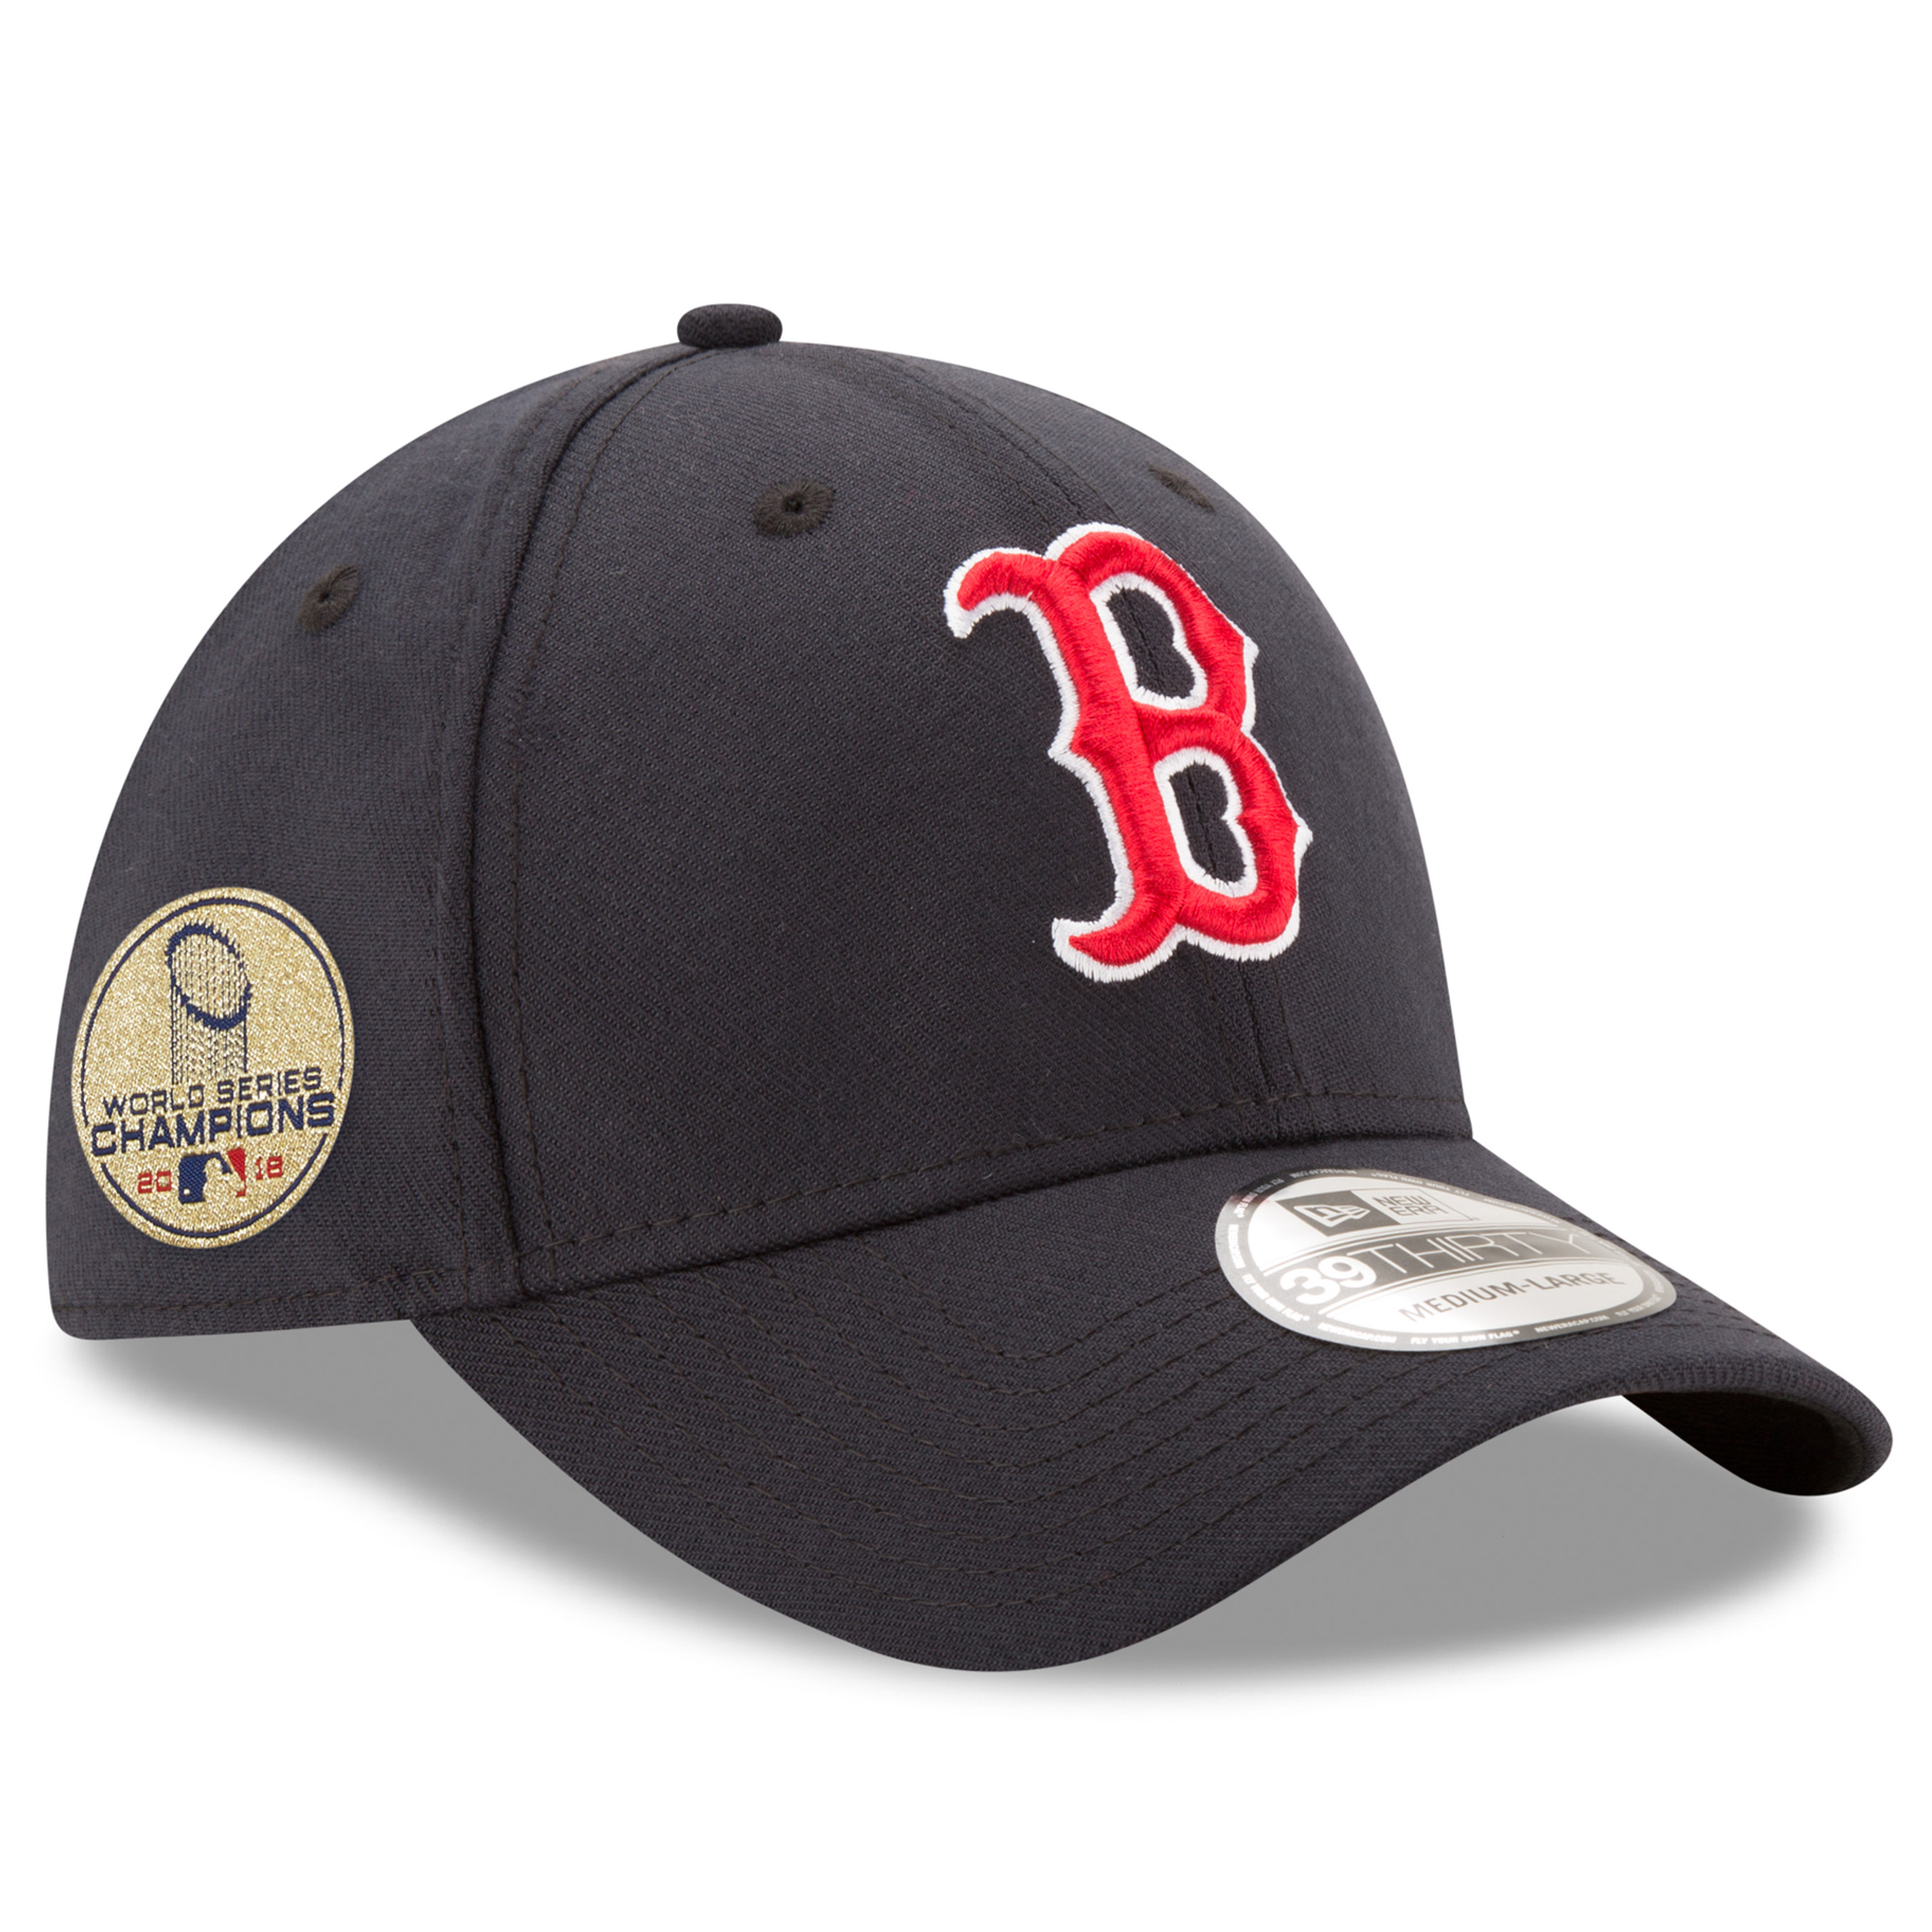 Boston Red Sox New Era 2018 World Series Champions Sidepatch 39THIRTY Flex Hat - Navy